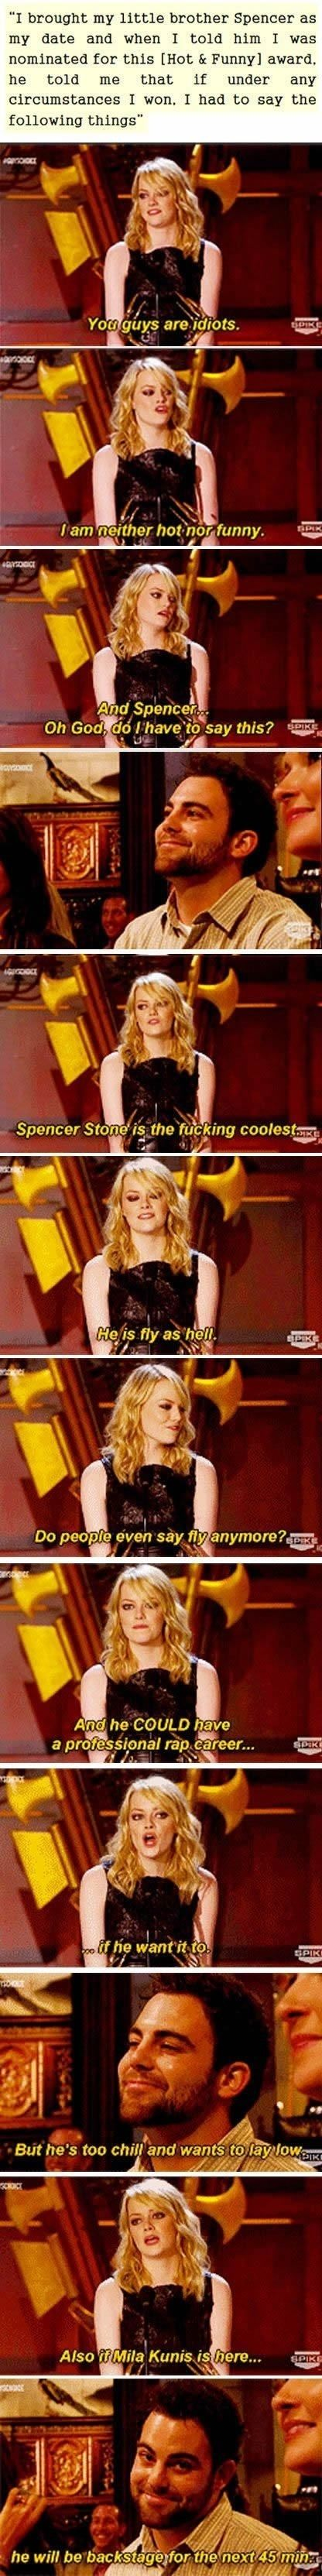 Emma Stone - funny pictures - funny photos - funny images - funny pics - funny quotes - #lol #humor #funny